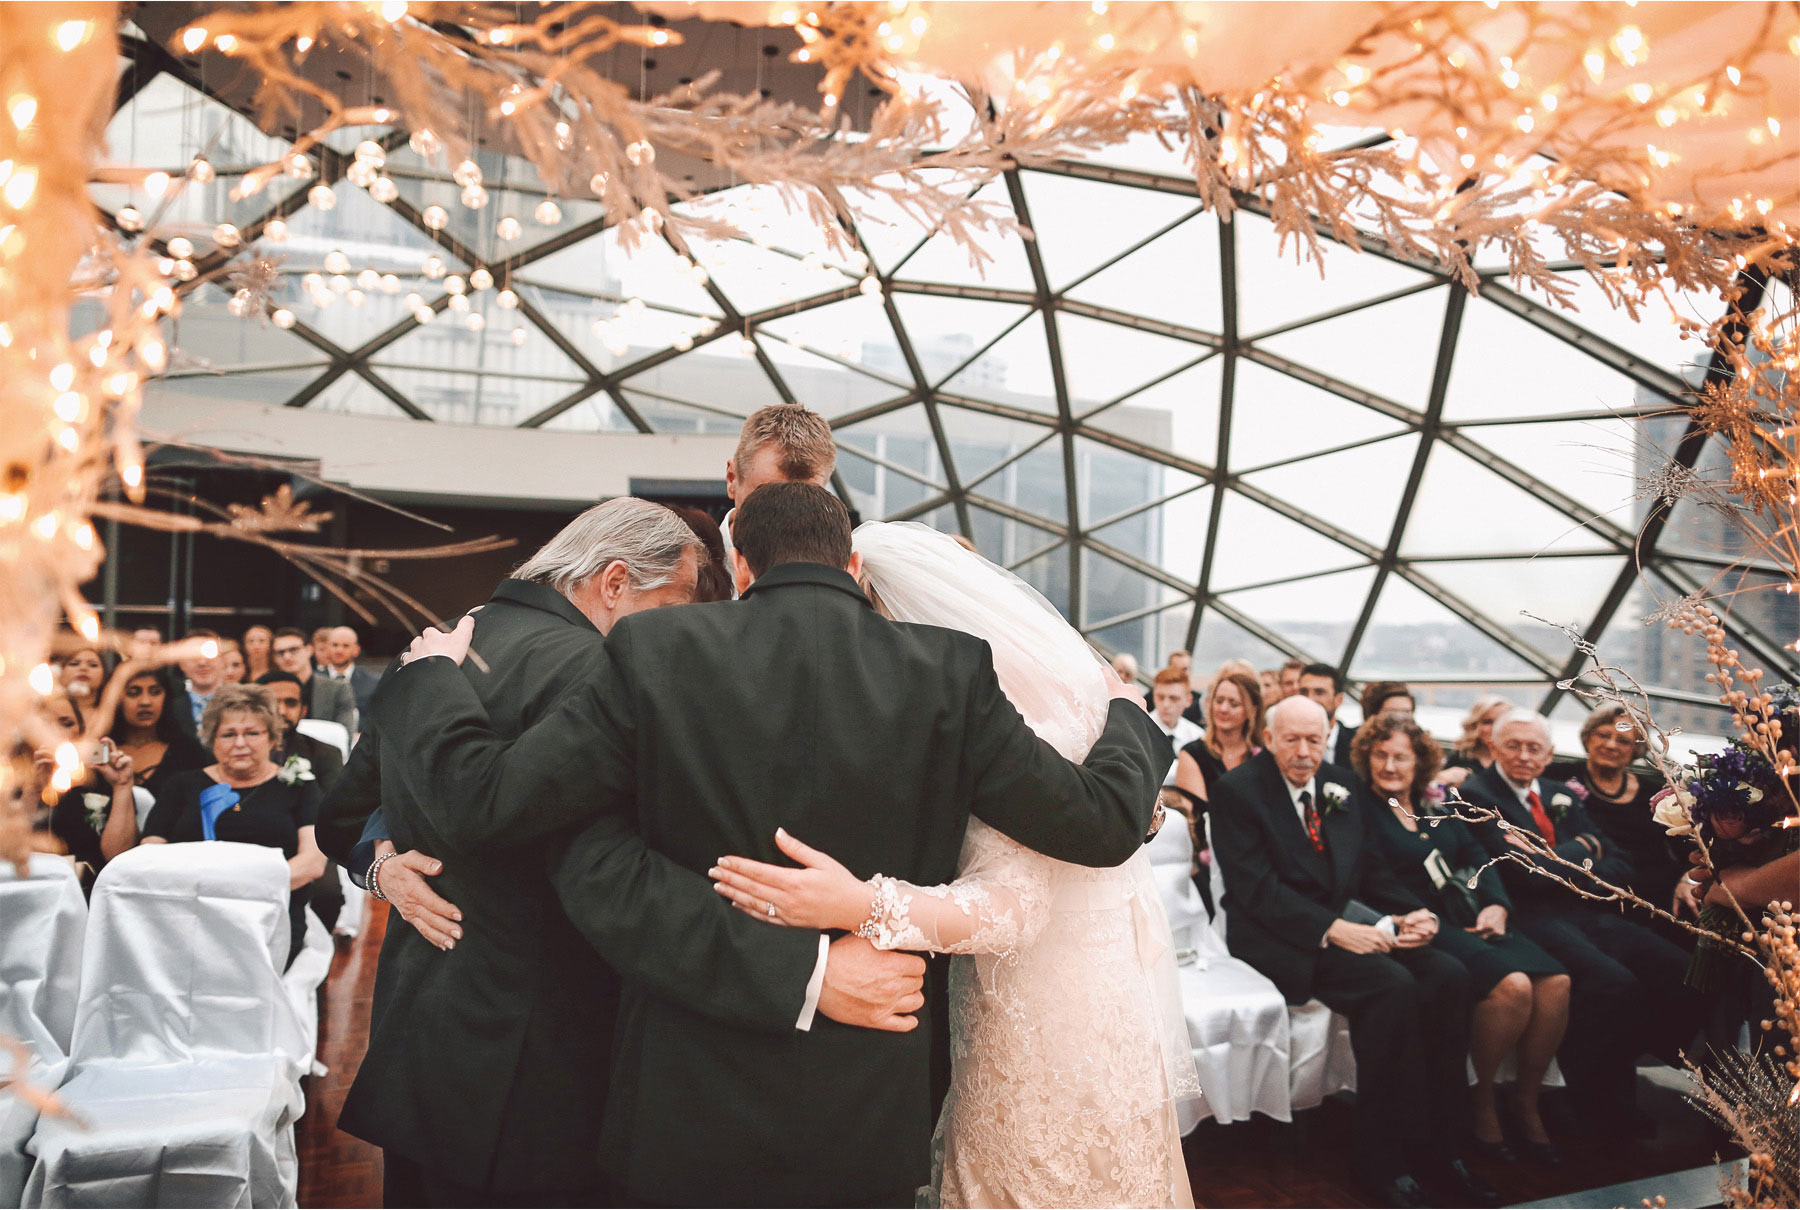 16-Minneapolis-Minnesota-Wedding-Photographer-by-Andrew-Vick-Photography-Winter-Millennium-Hotel-Ceremony-Bride-Groom-Family-Prayer-Vintage-Jennifer-and-Phillip.jpg